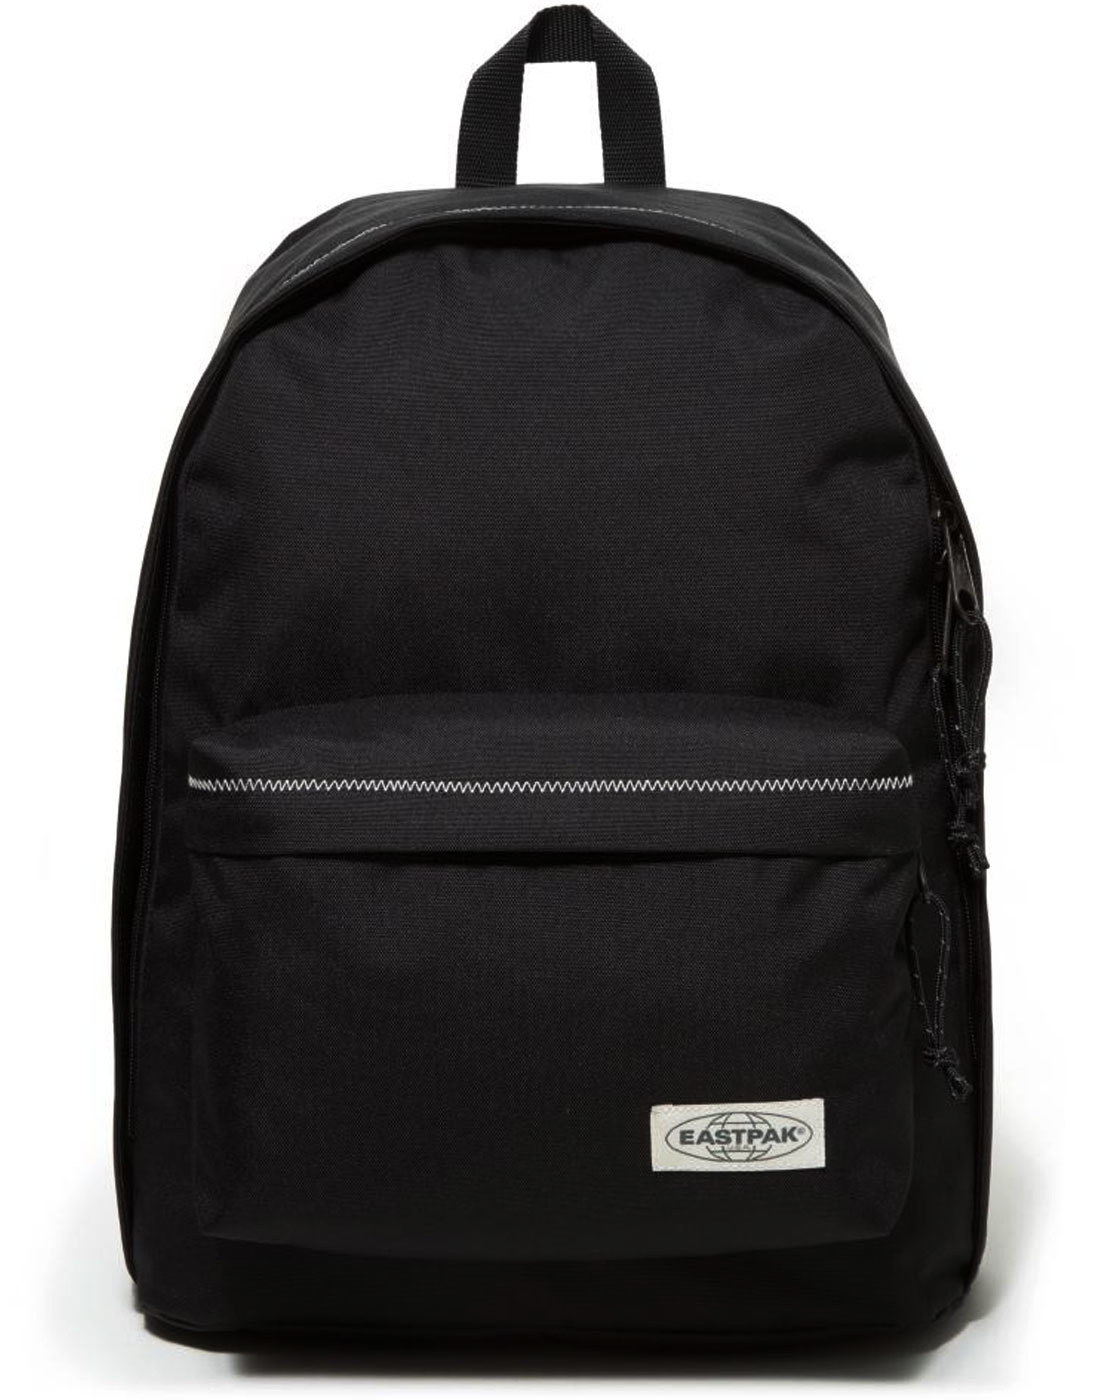 Out Of Office EASTPAK Black Stitch Laptop Backpack